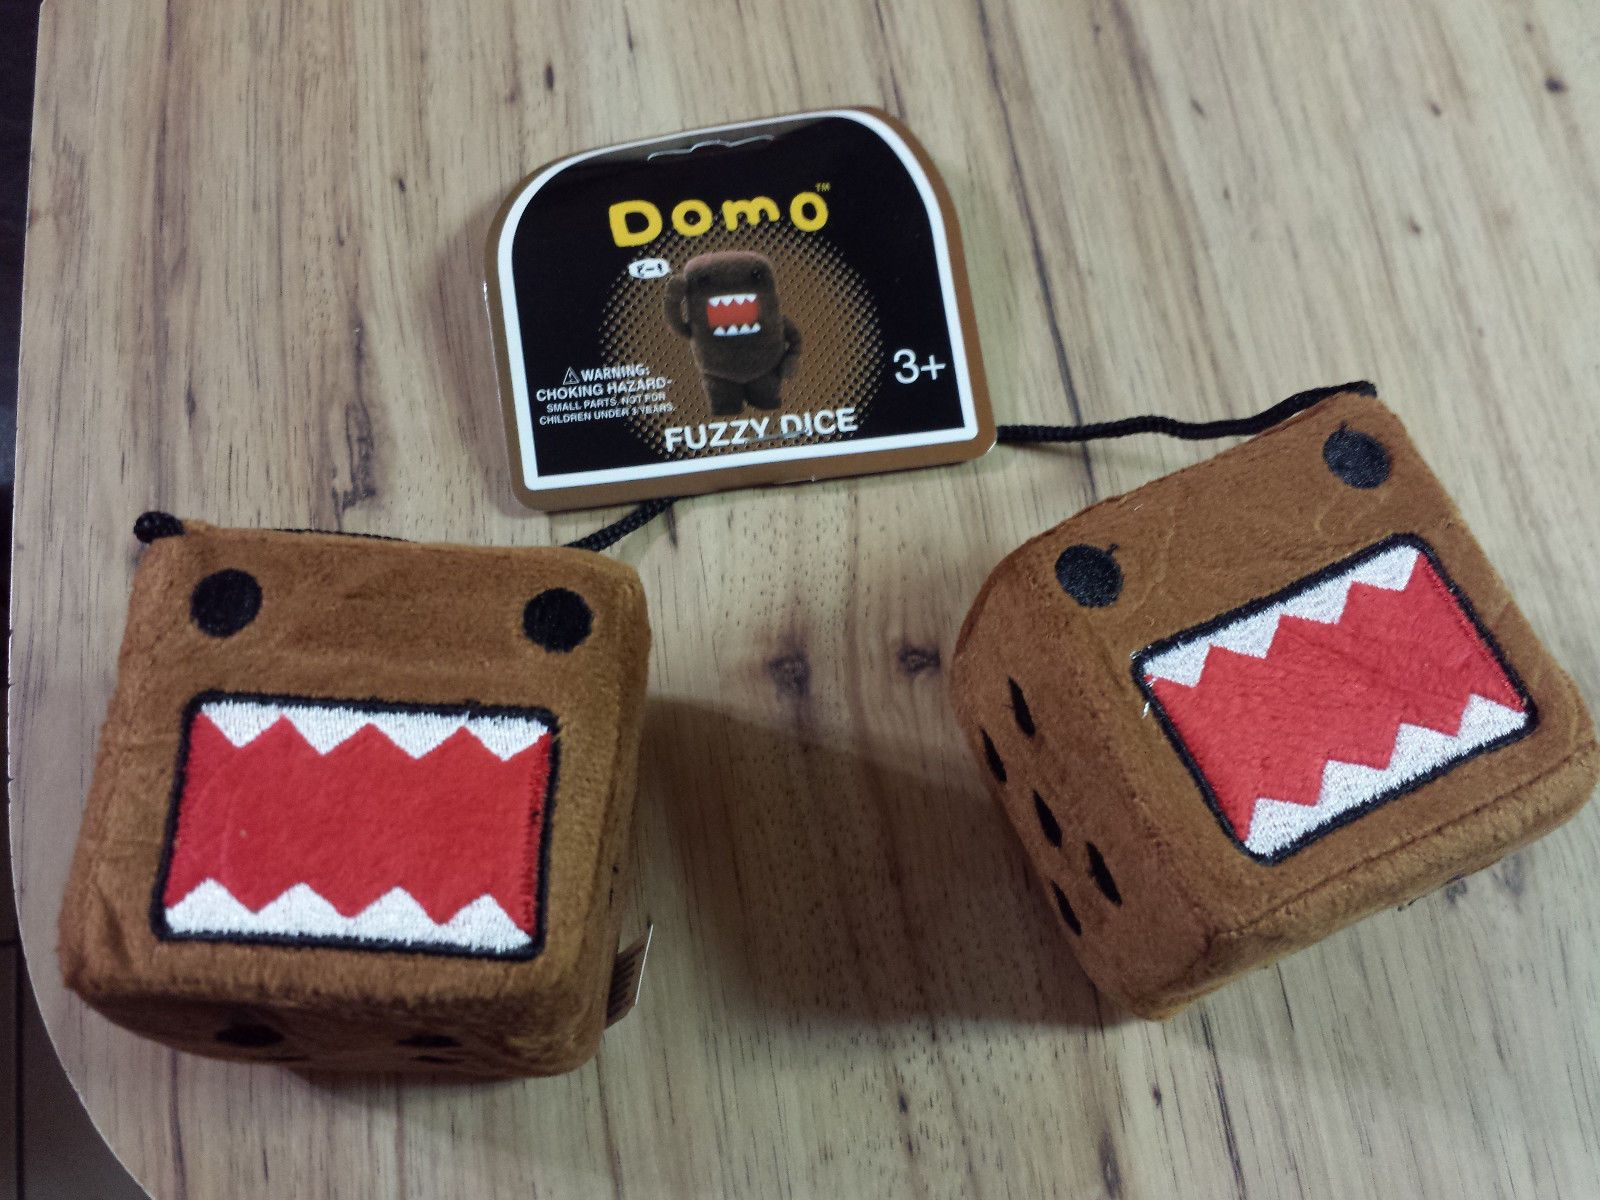 Or Key Cover Keychain DOMO Plush Road Rage Angry Face Fuzzy Dice FREE Lanyard